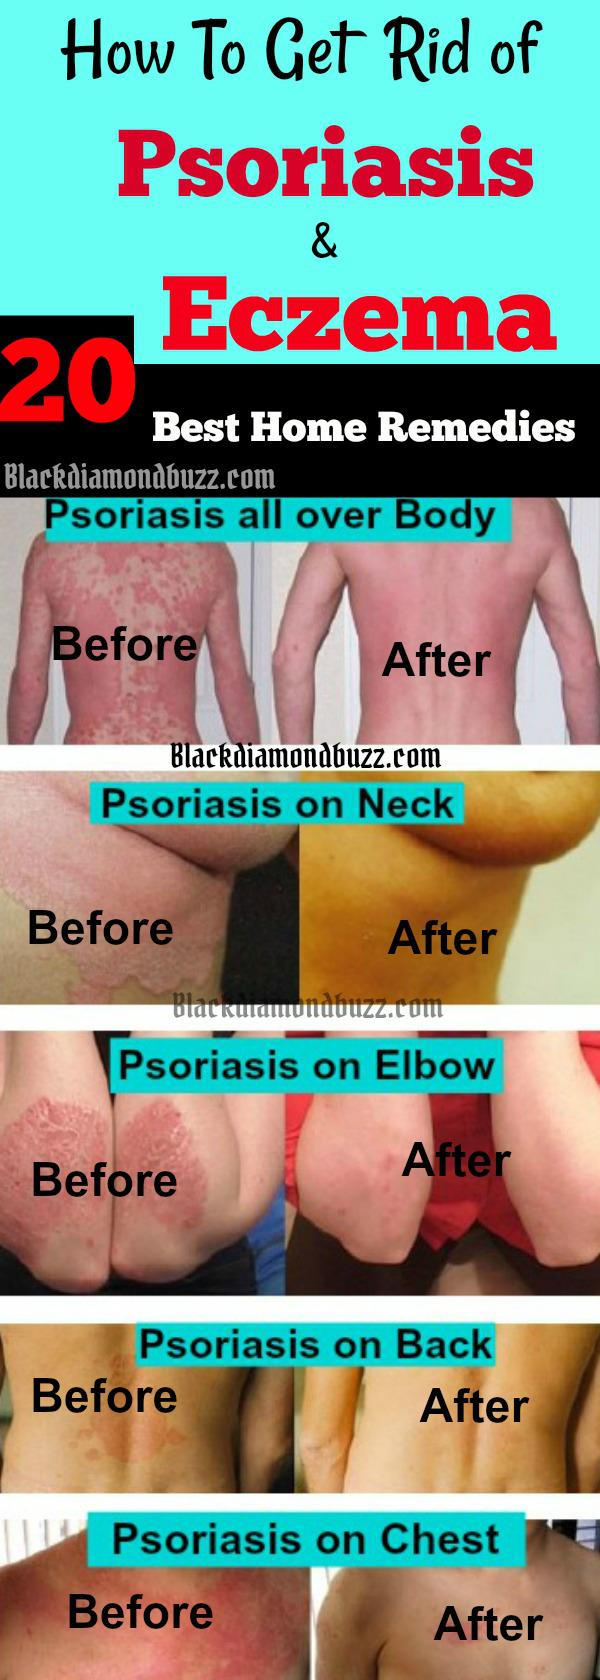 20 Best Home Remedies For Psoriasis and Eczema That Work